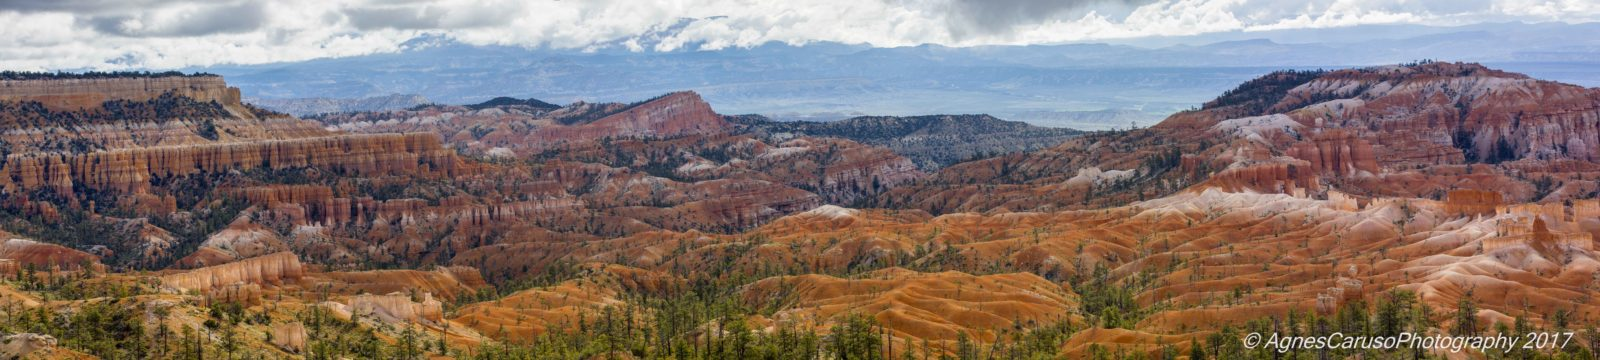 Afternoon in Bryce Canyon